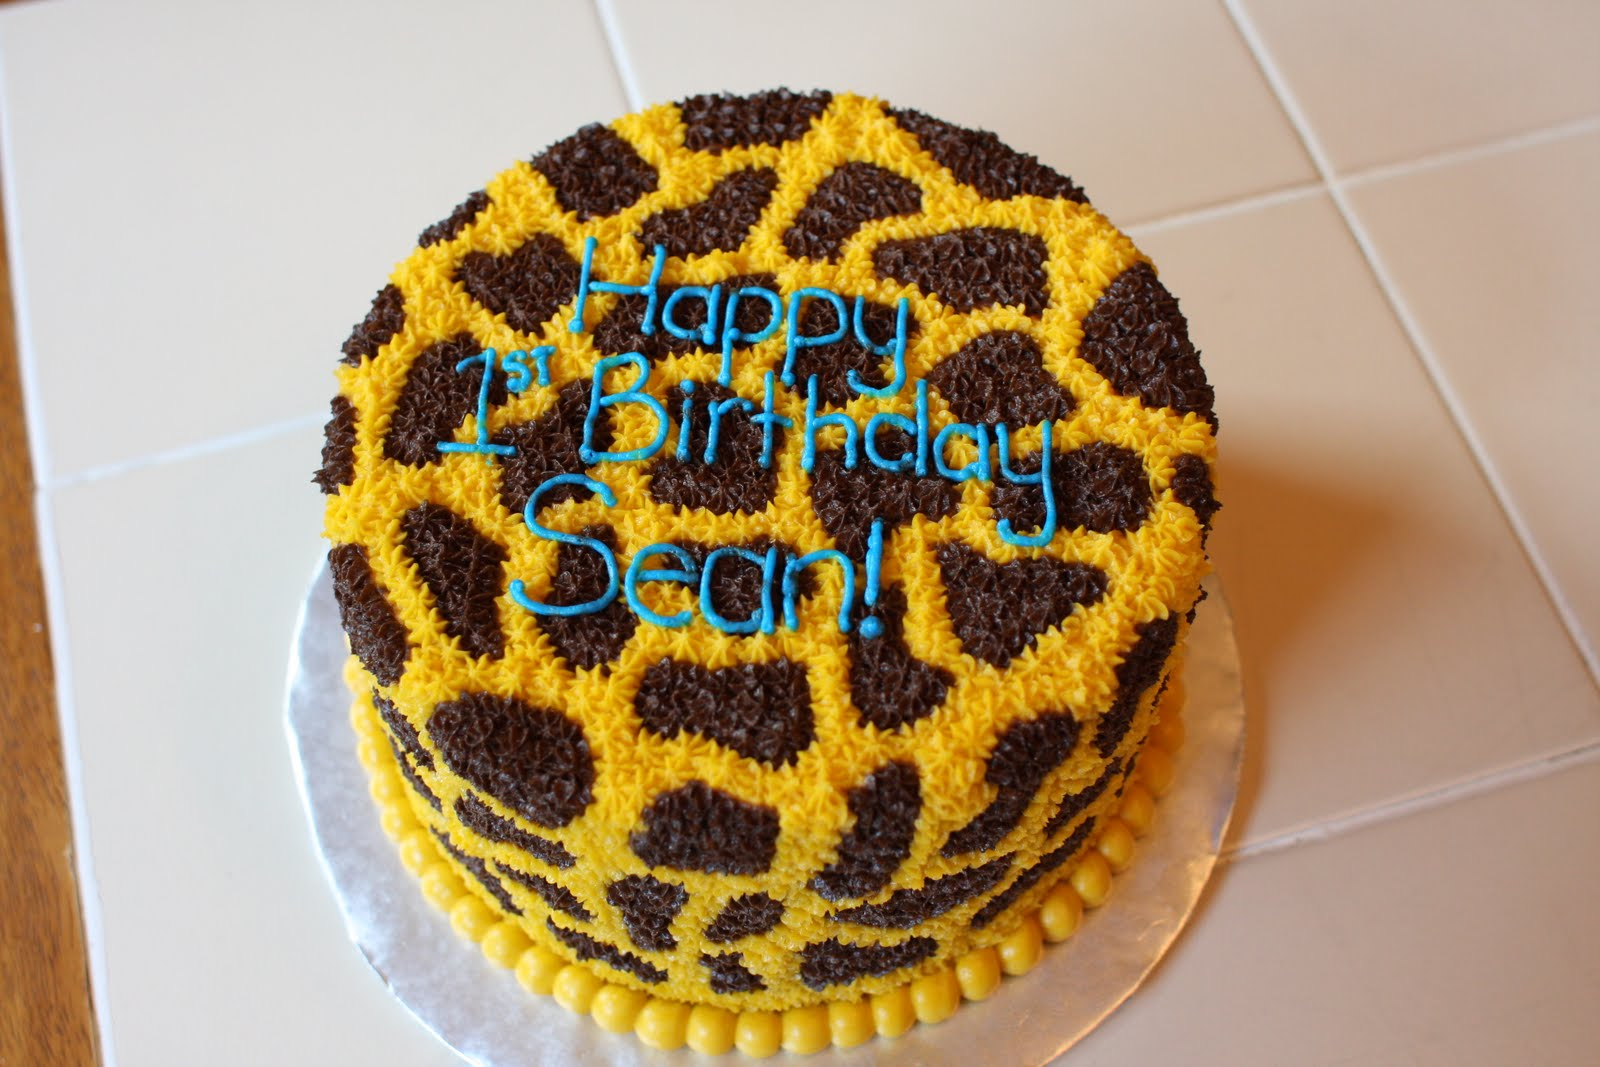 The Buttercream Bakery Giraffe Print 1st Birthday Cakes